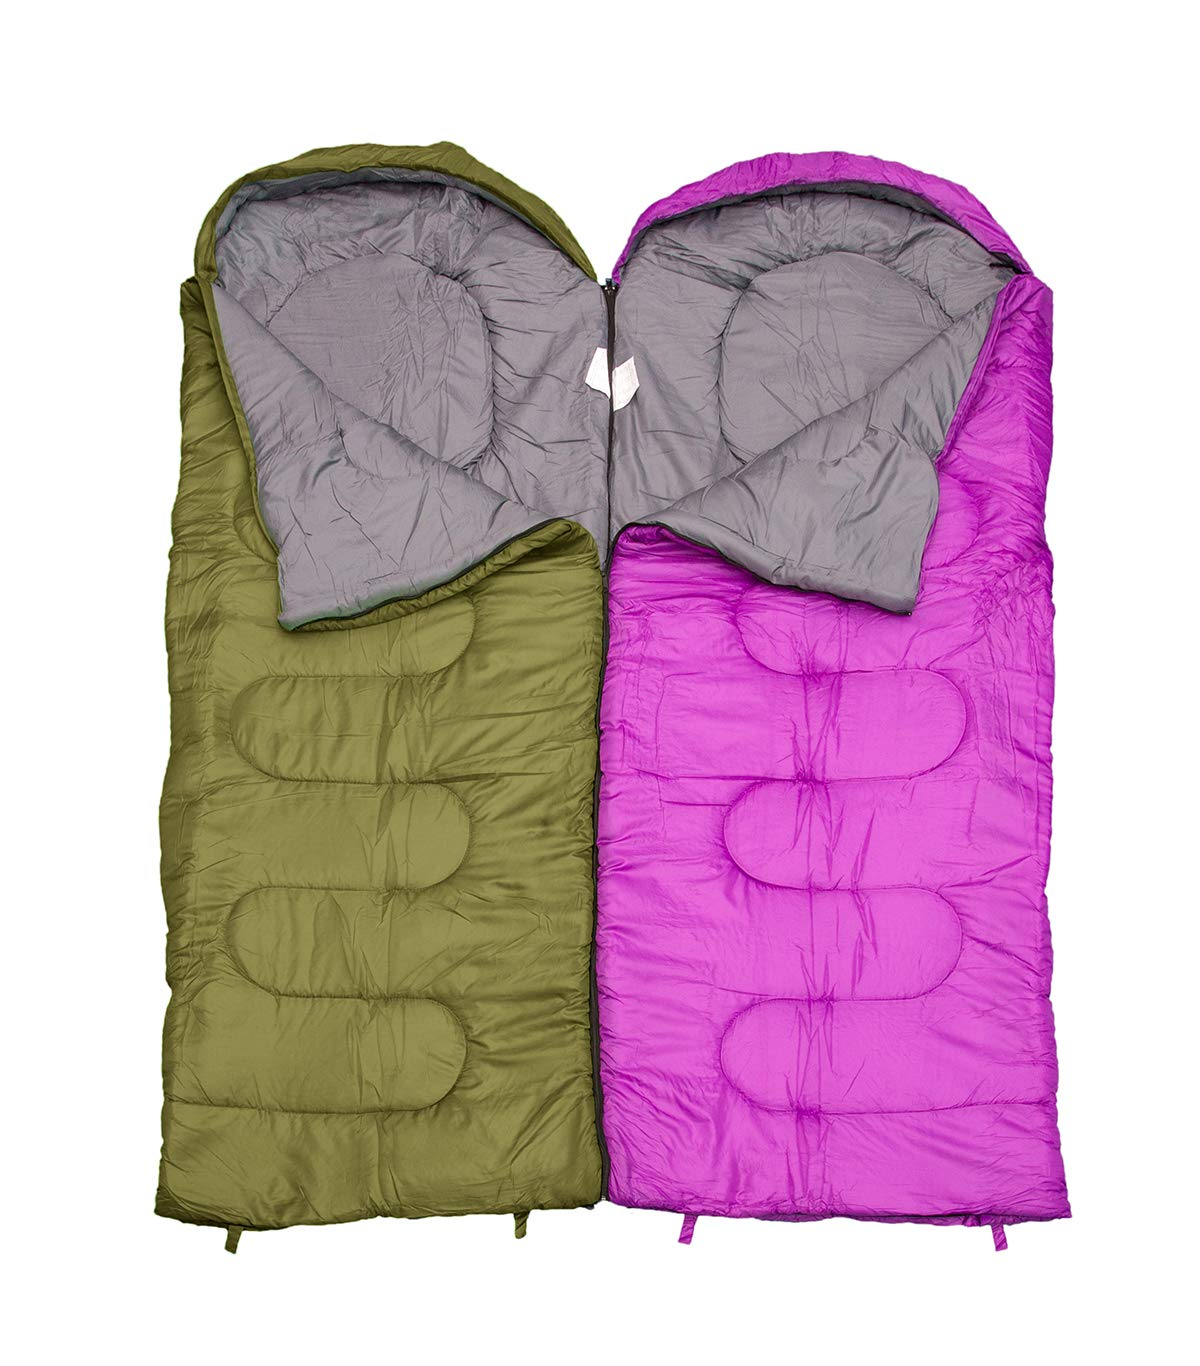 REVALCAMP Sleeping Bag for Cold Weather - 4 Season Envelope Shape Bags by Great for Kids, Teens & Adults. Warm and Lightweight - Perfect for Hiking, Backpacking & Camping 8